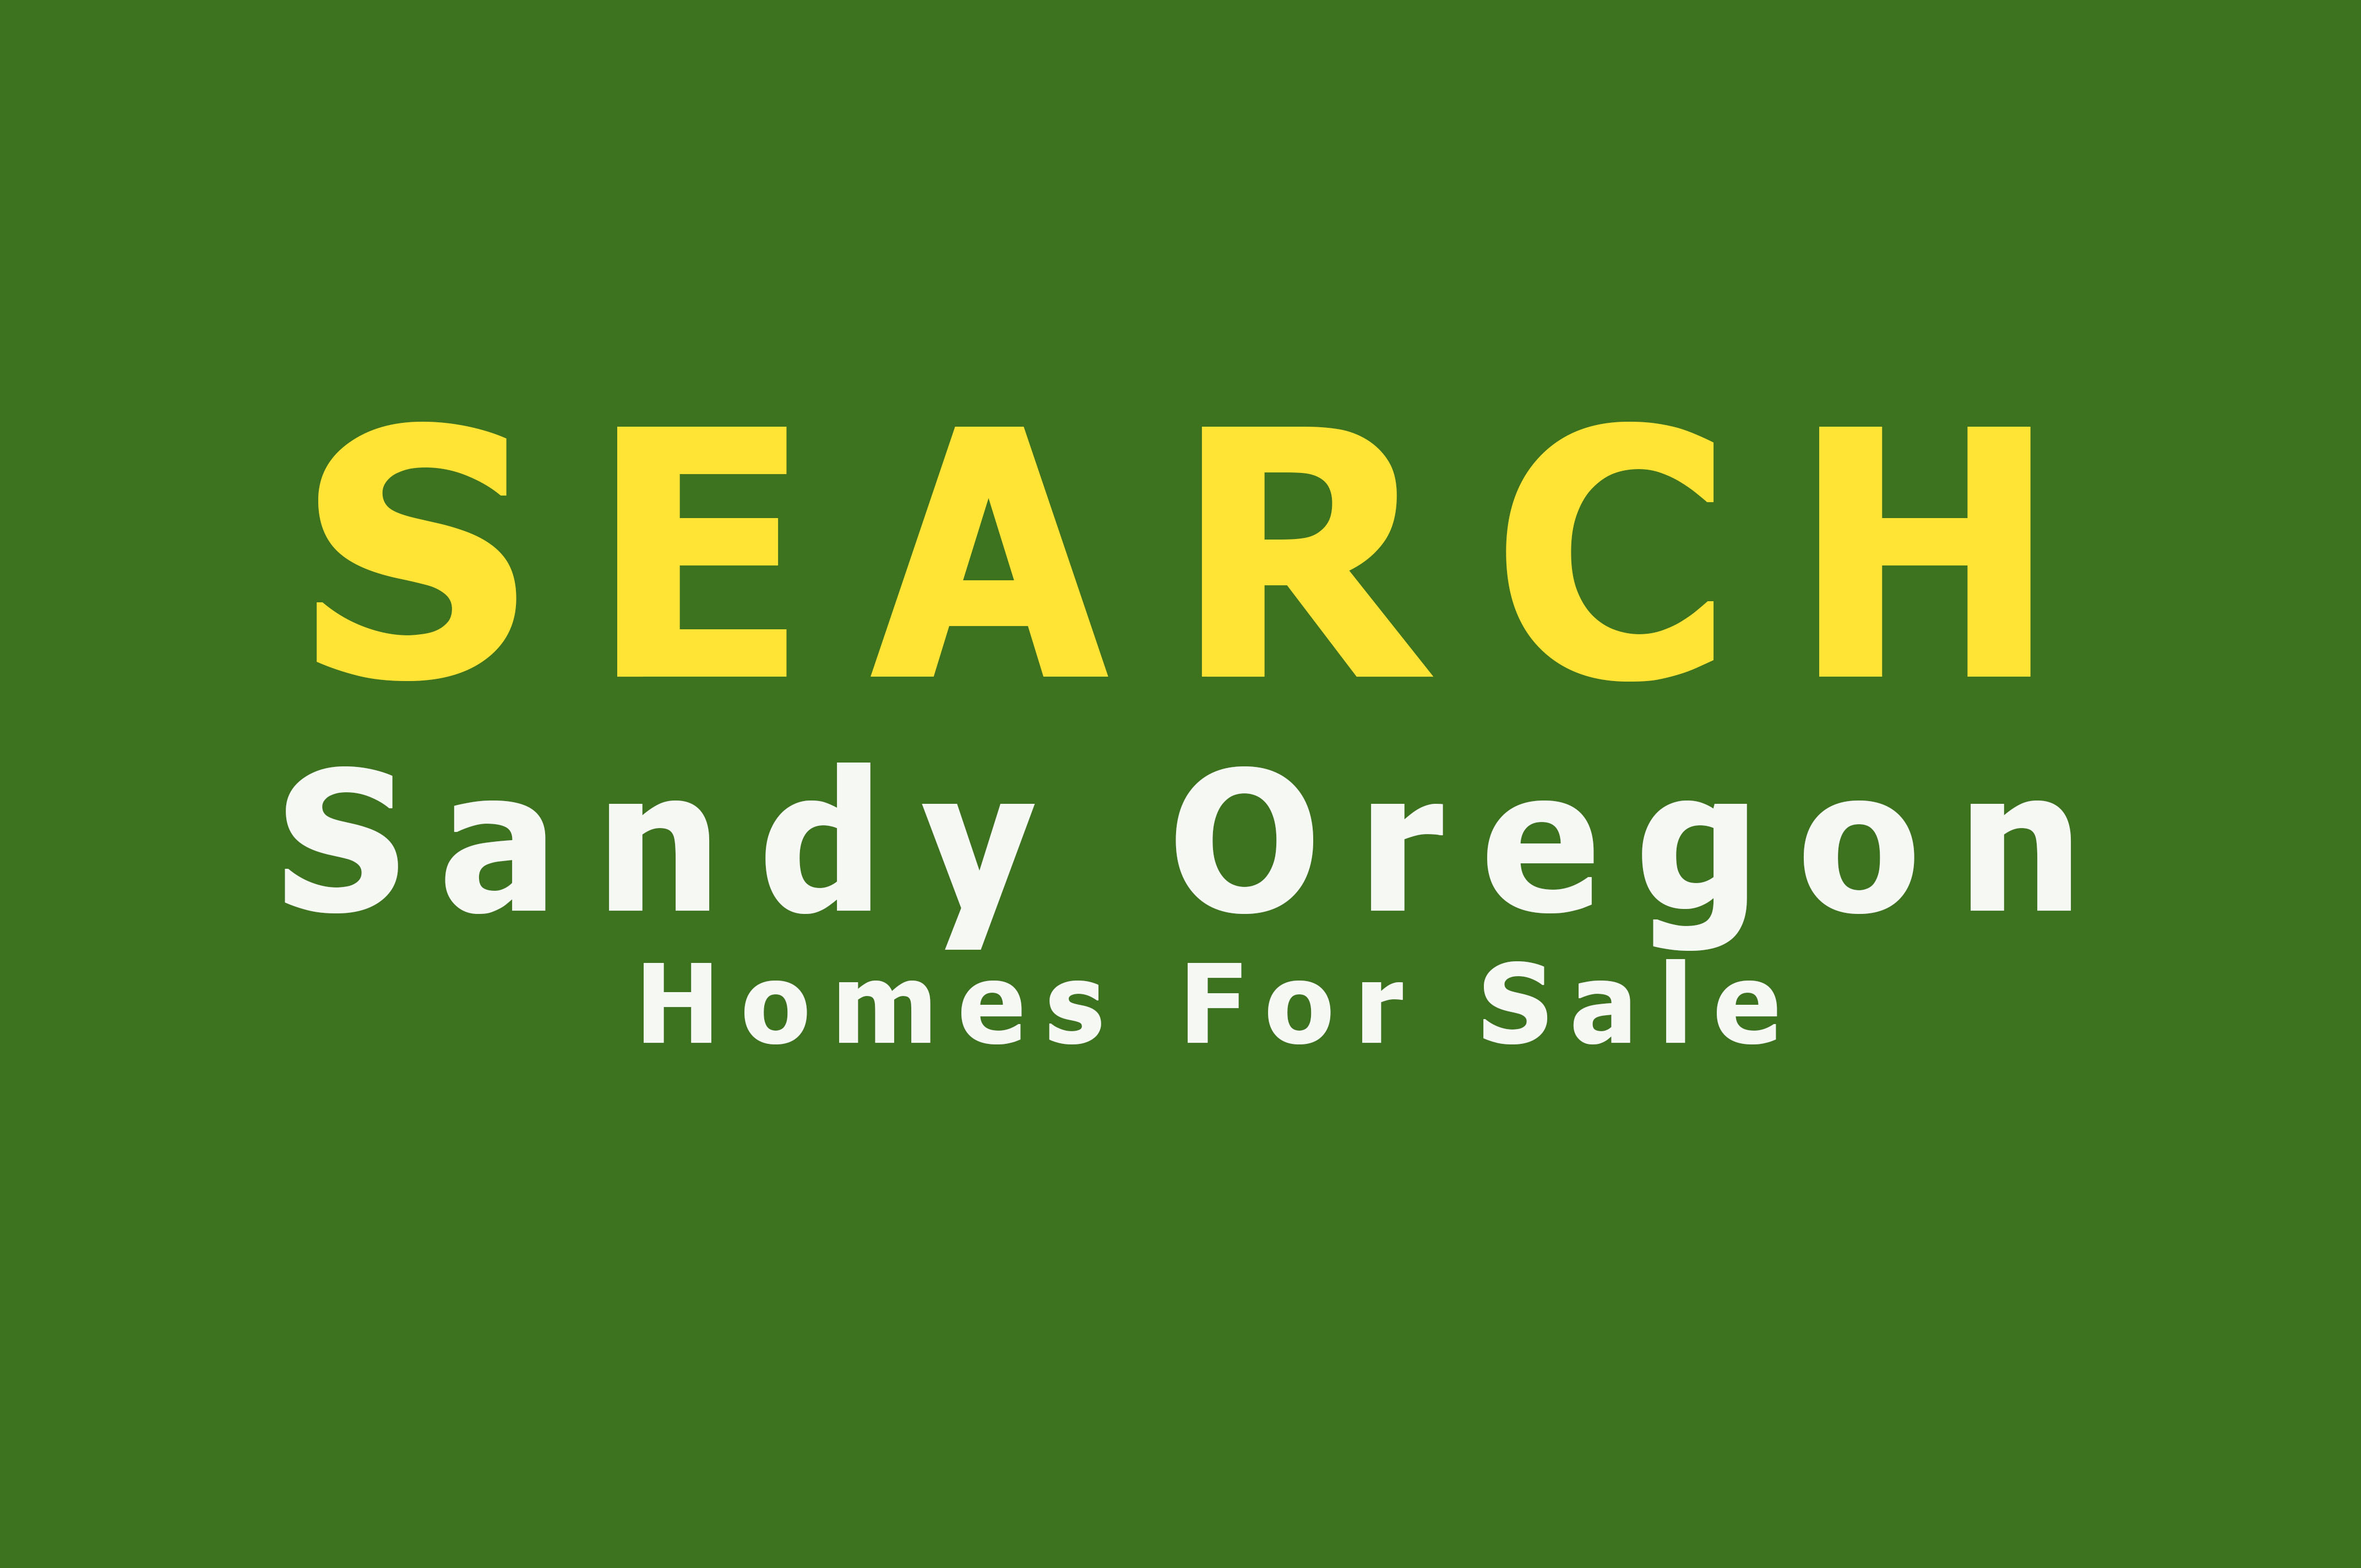 Search Sandy Oregon Homes for Sale